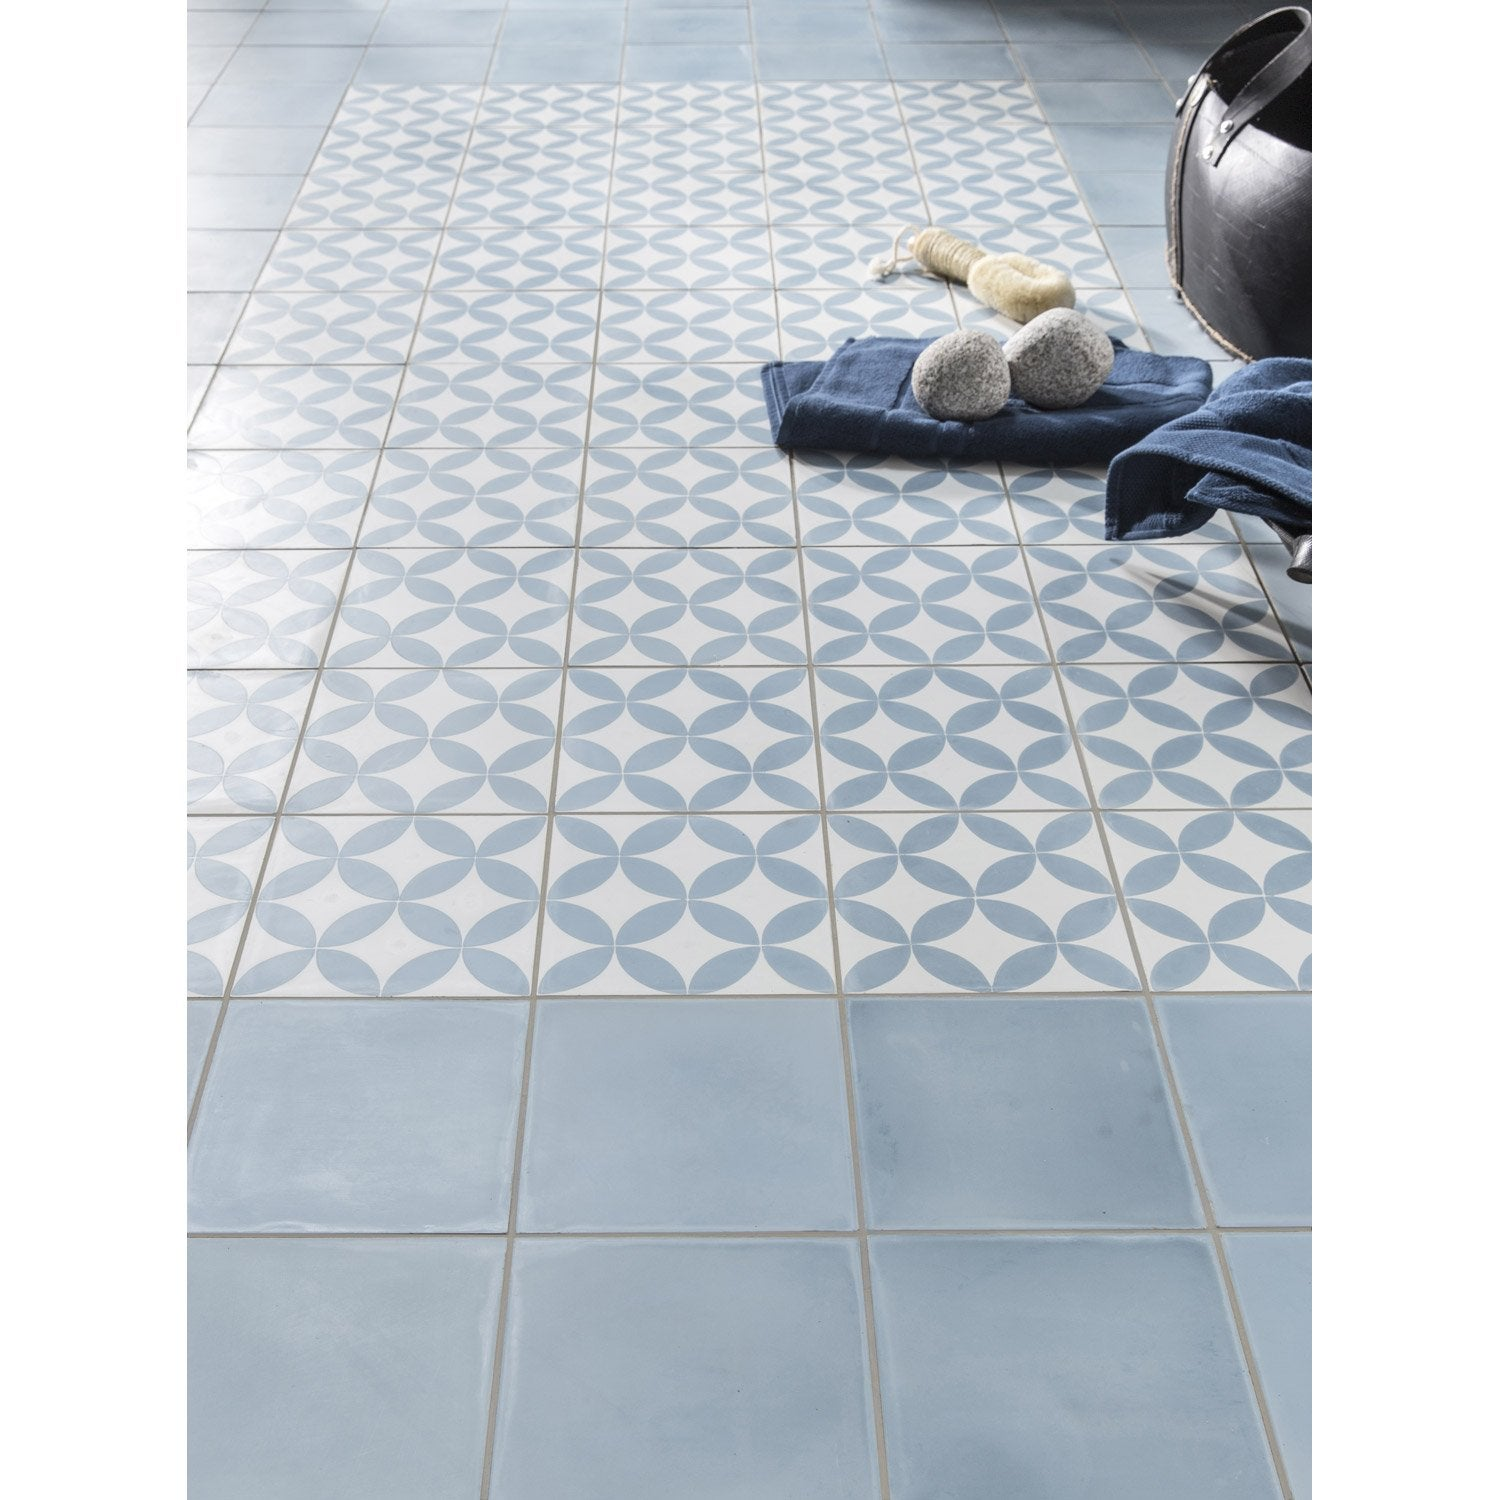 Carreau de ciment sol et mur bleu baltique x cm for Salle de bain 3m2 leroy merlin